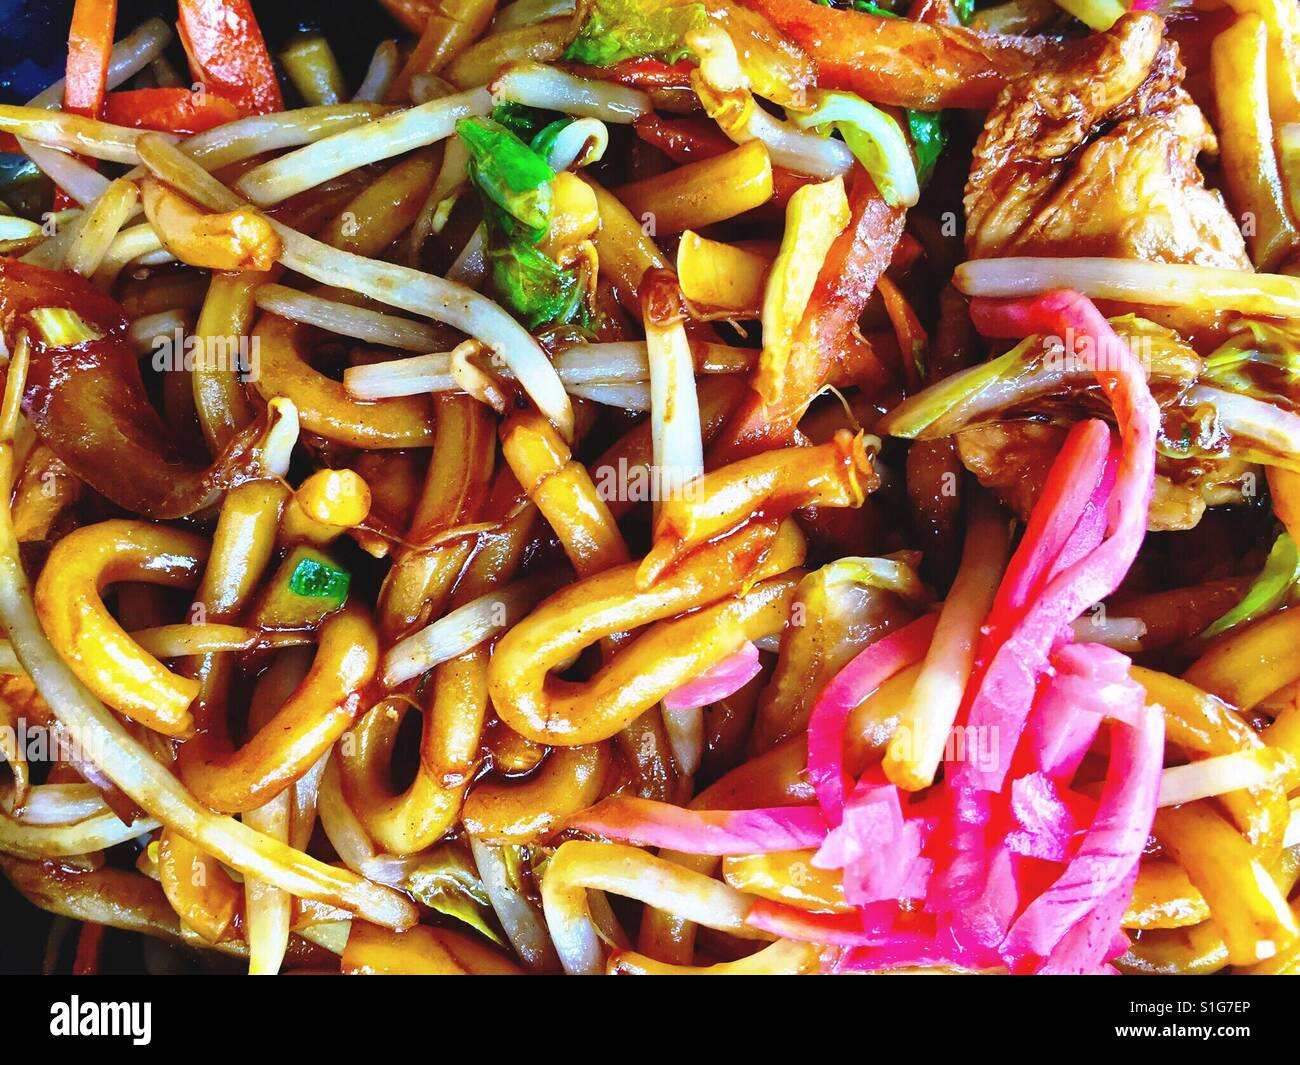 Stir fried chicken with udon noodles and pickled ginger. - Stock Image